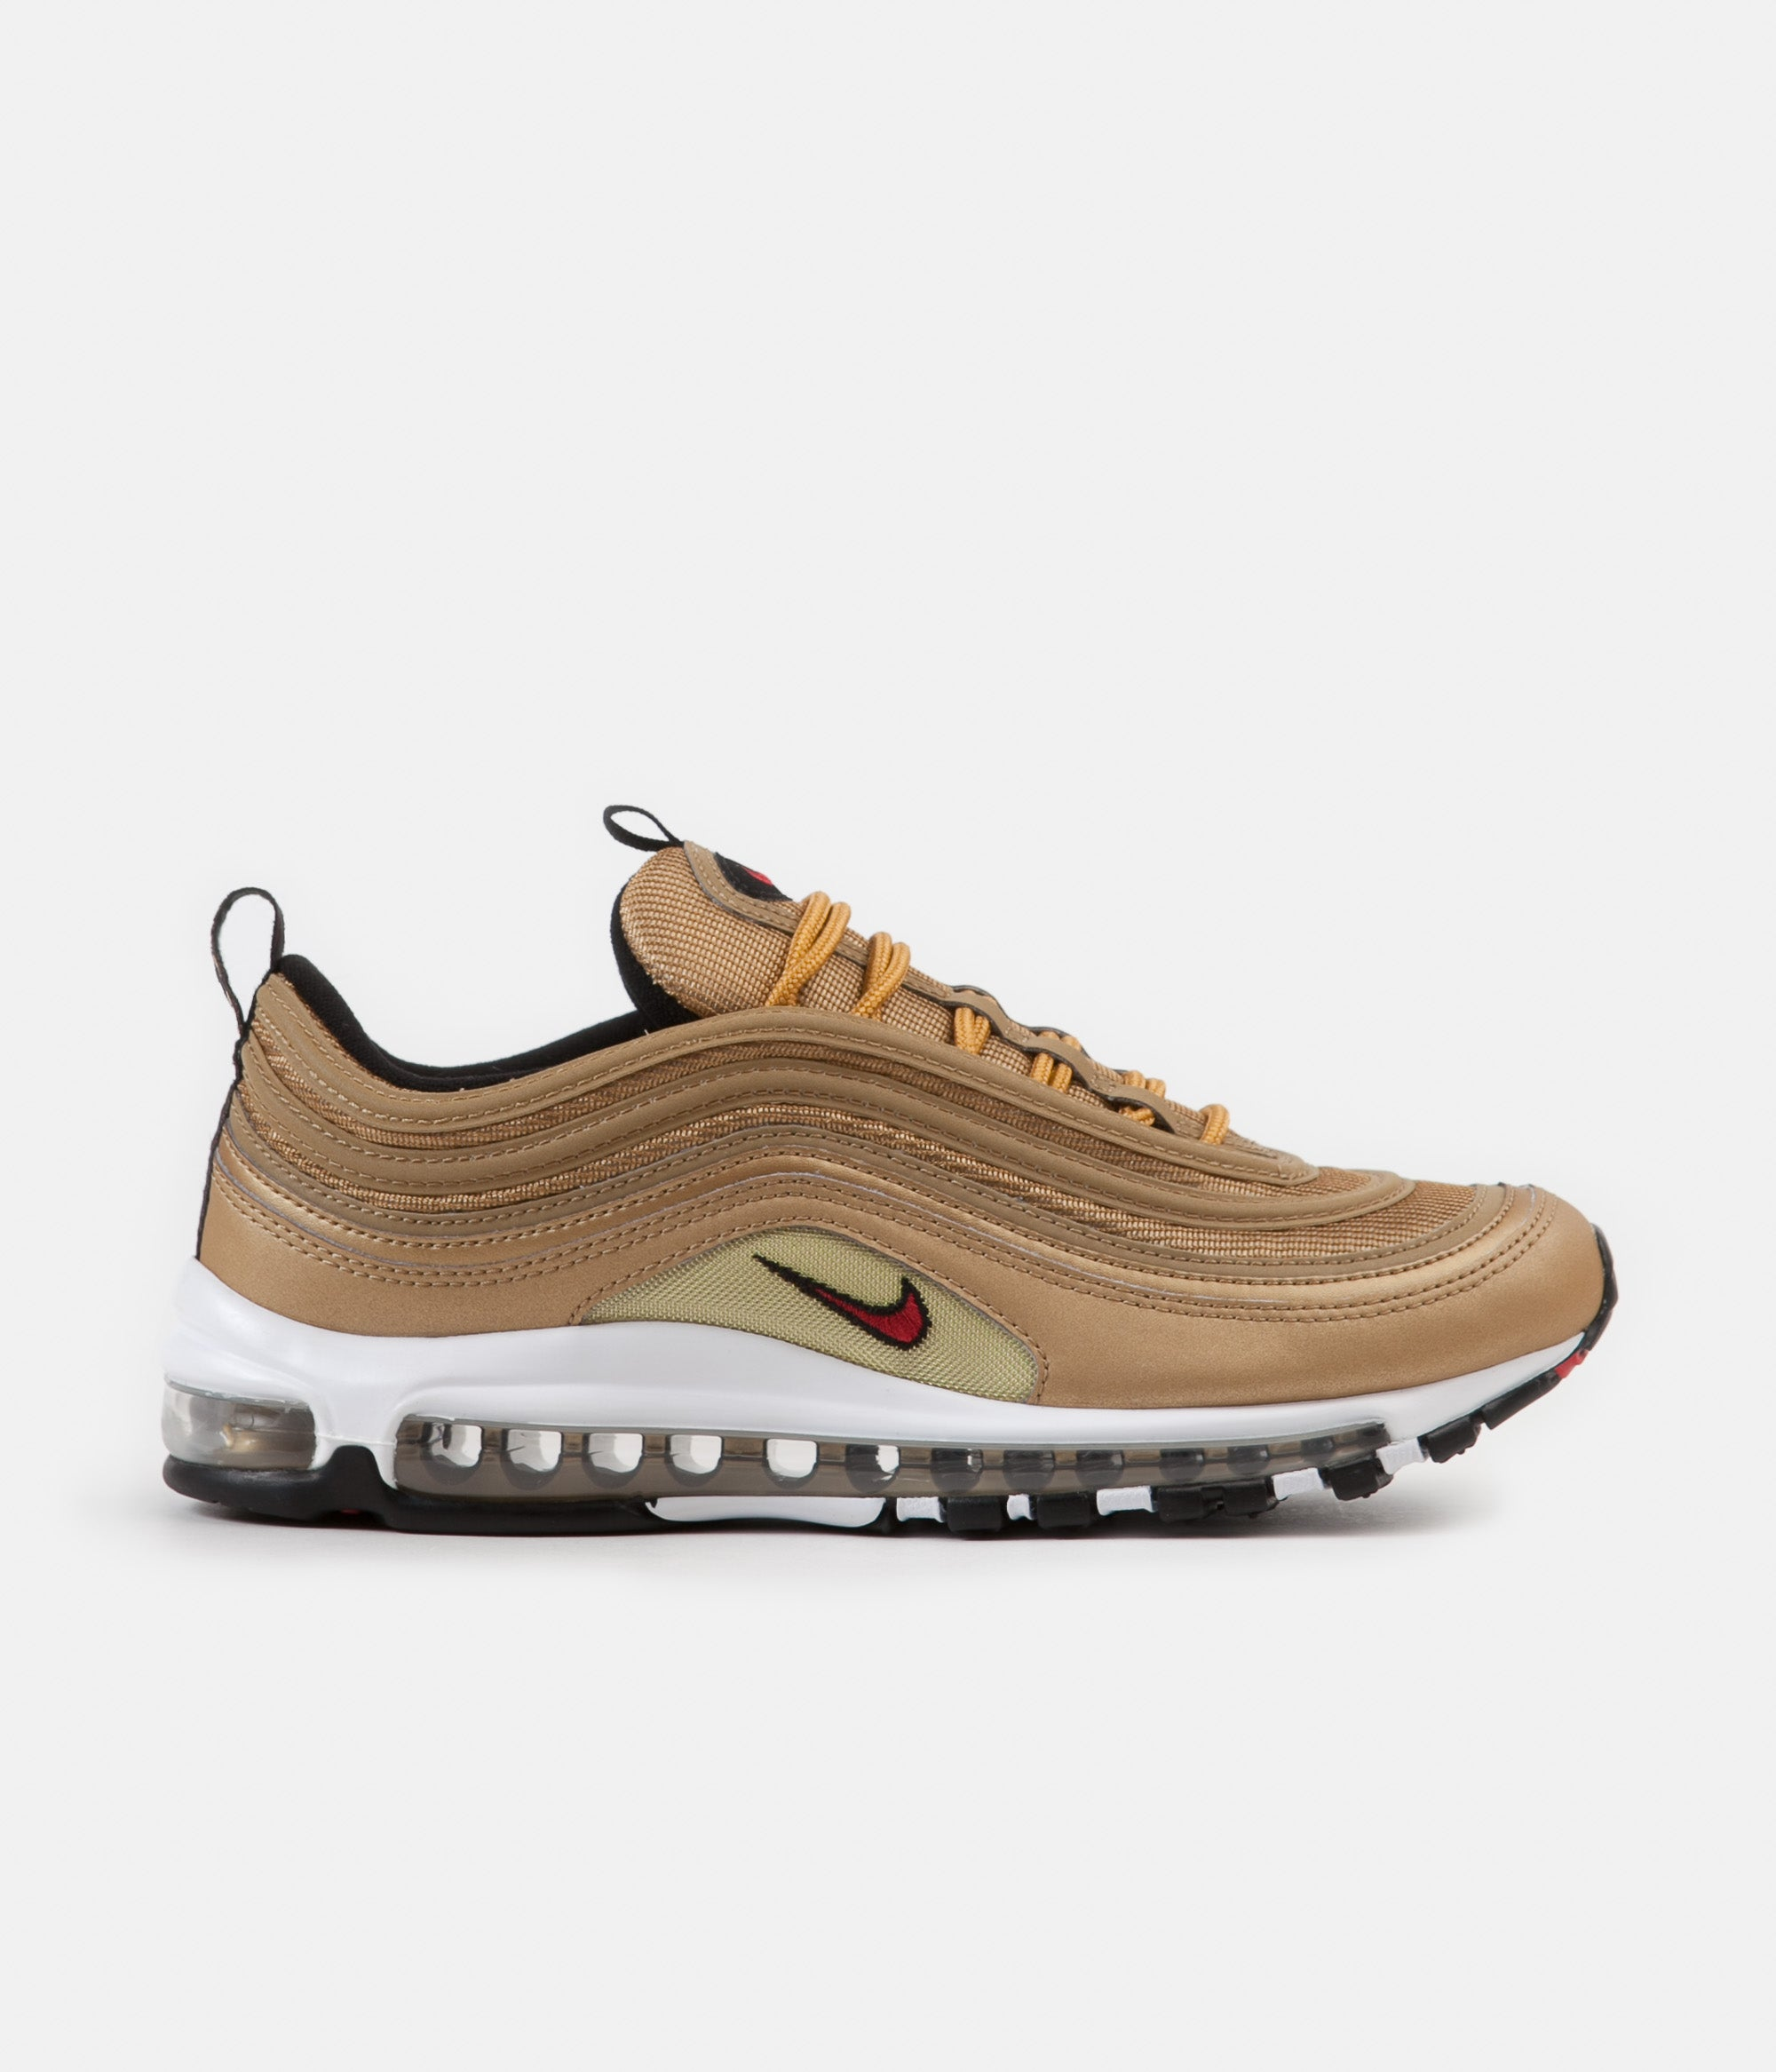 factory authentic 75639 31b3e ... Nike Air Max 97 OG Shoes - Metallic Gold   Varsity Red - White - Black  ...